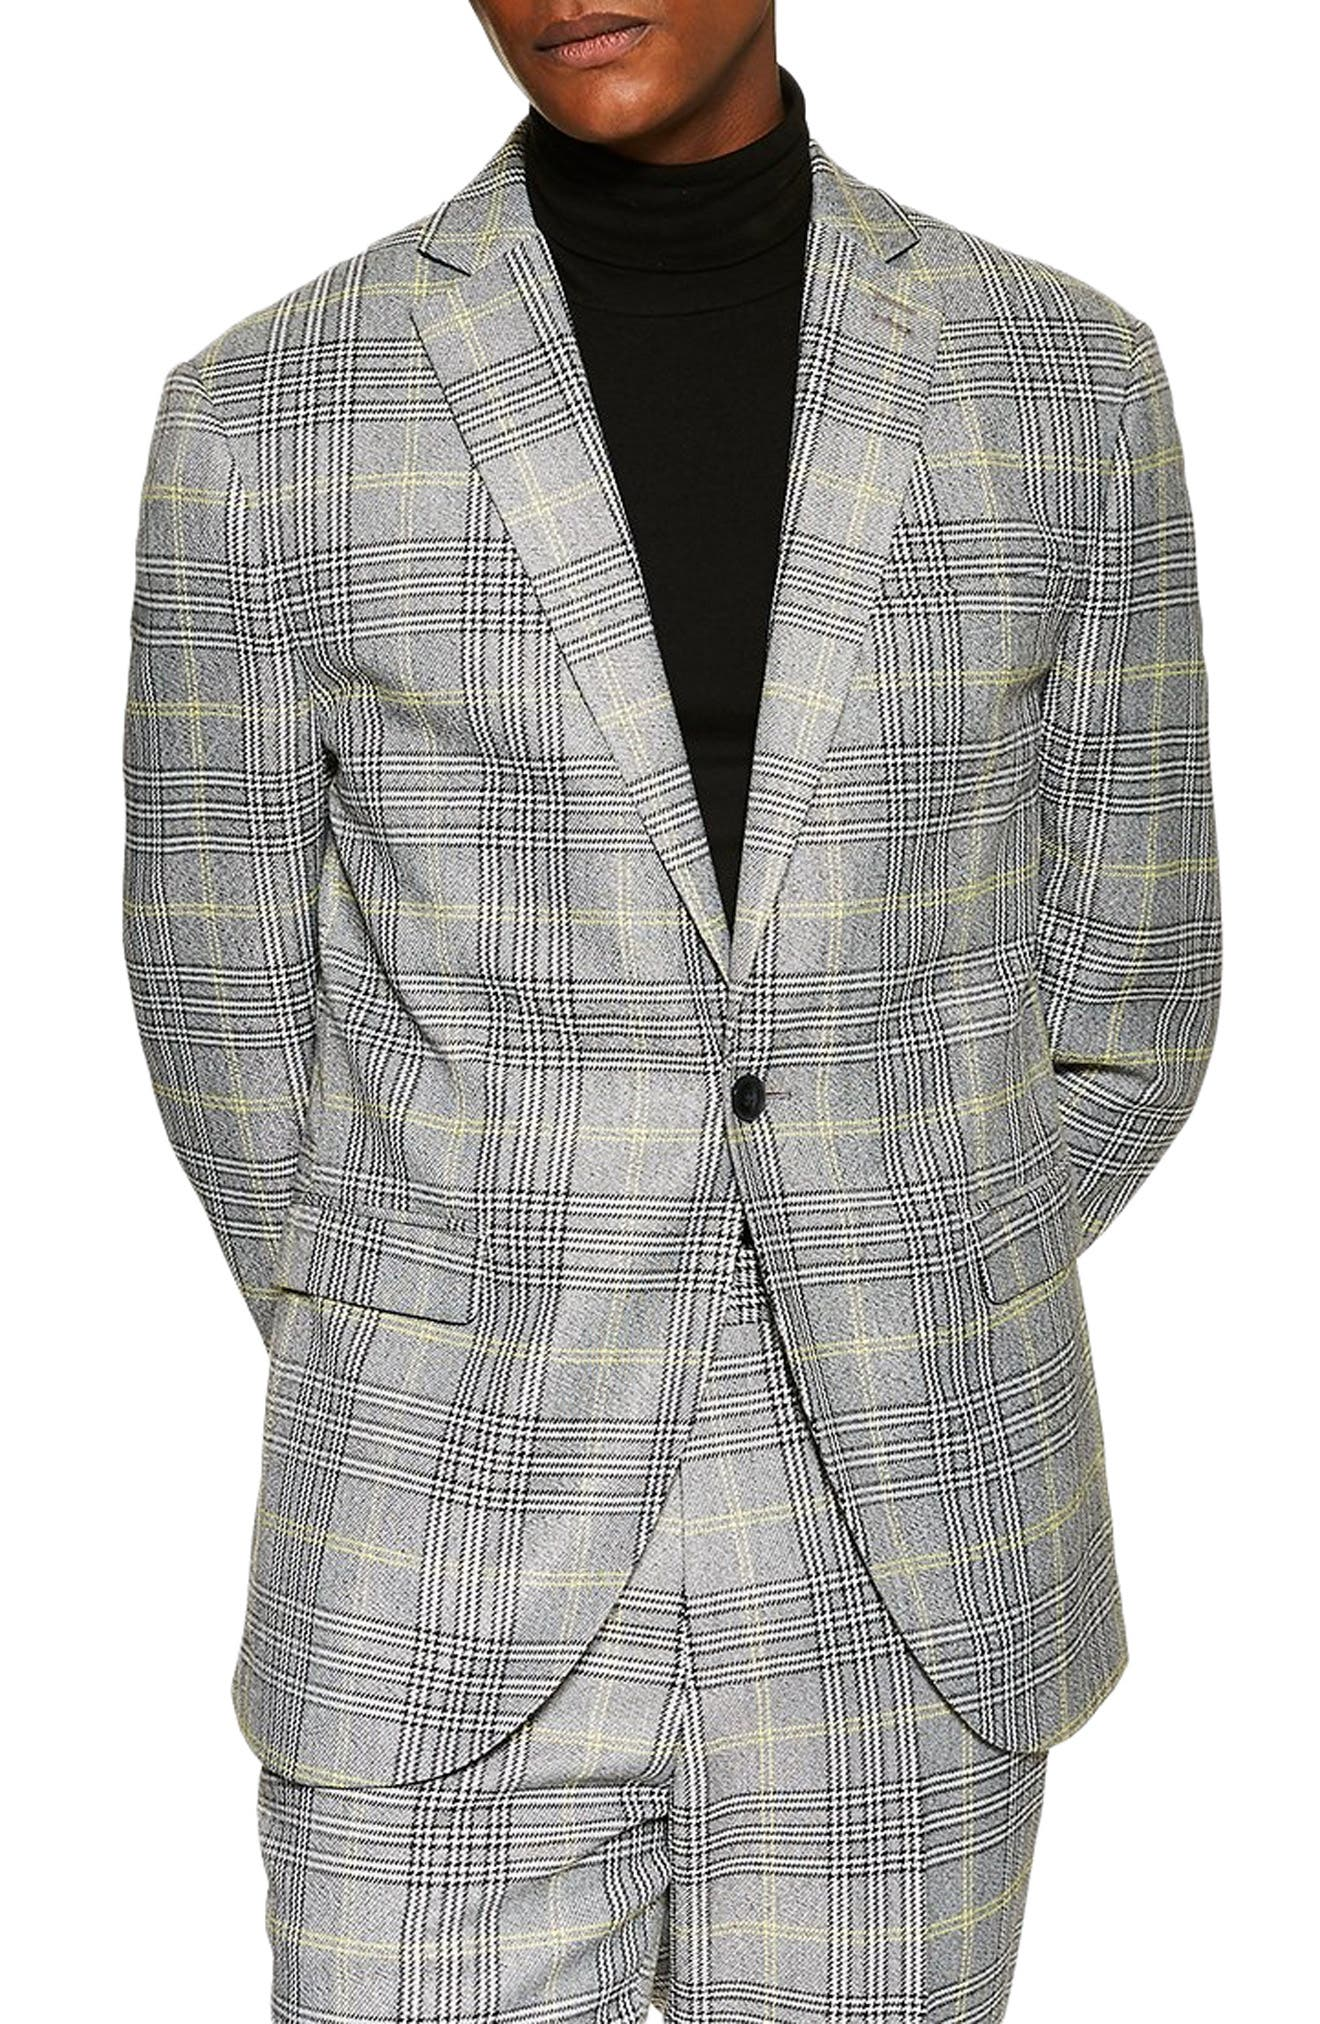 TOPMAN, Single Breasted Check Slim Suit Jacket, Main thumbnail 1, color, GREY